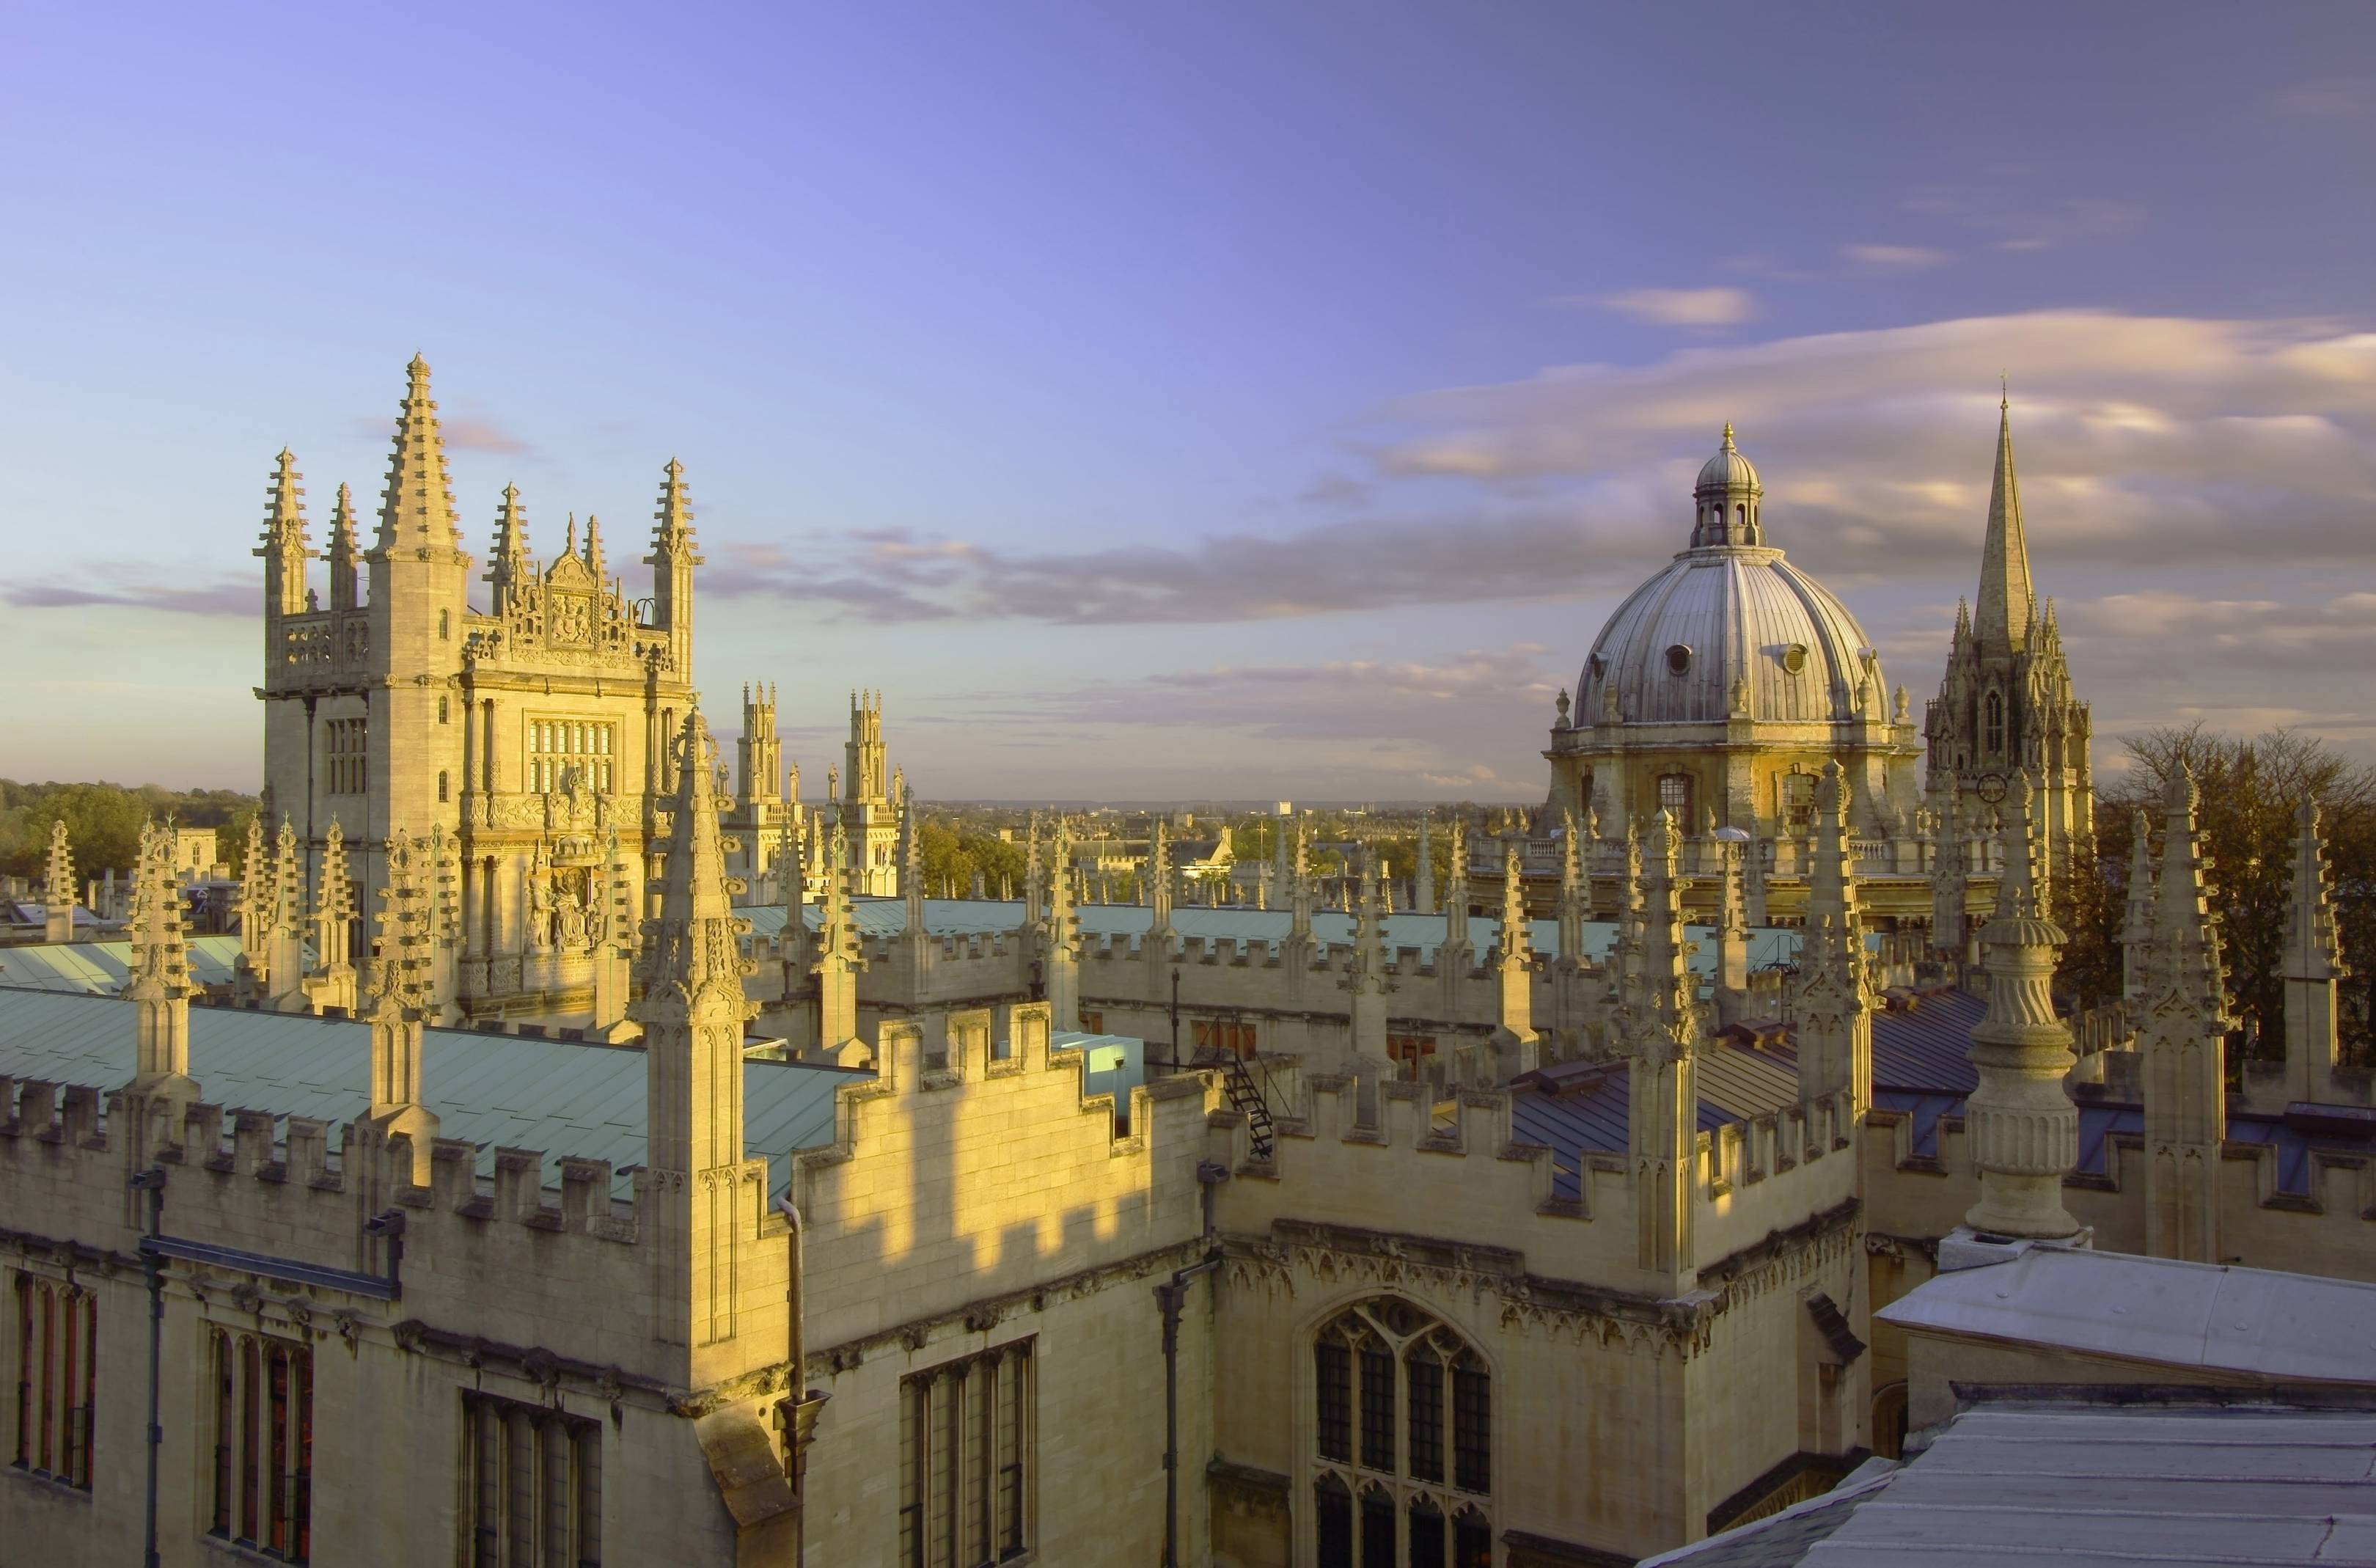 A 'His Dark Materials' guide to Oxford